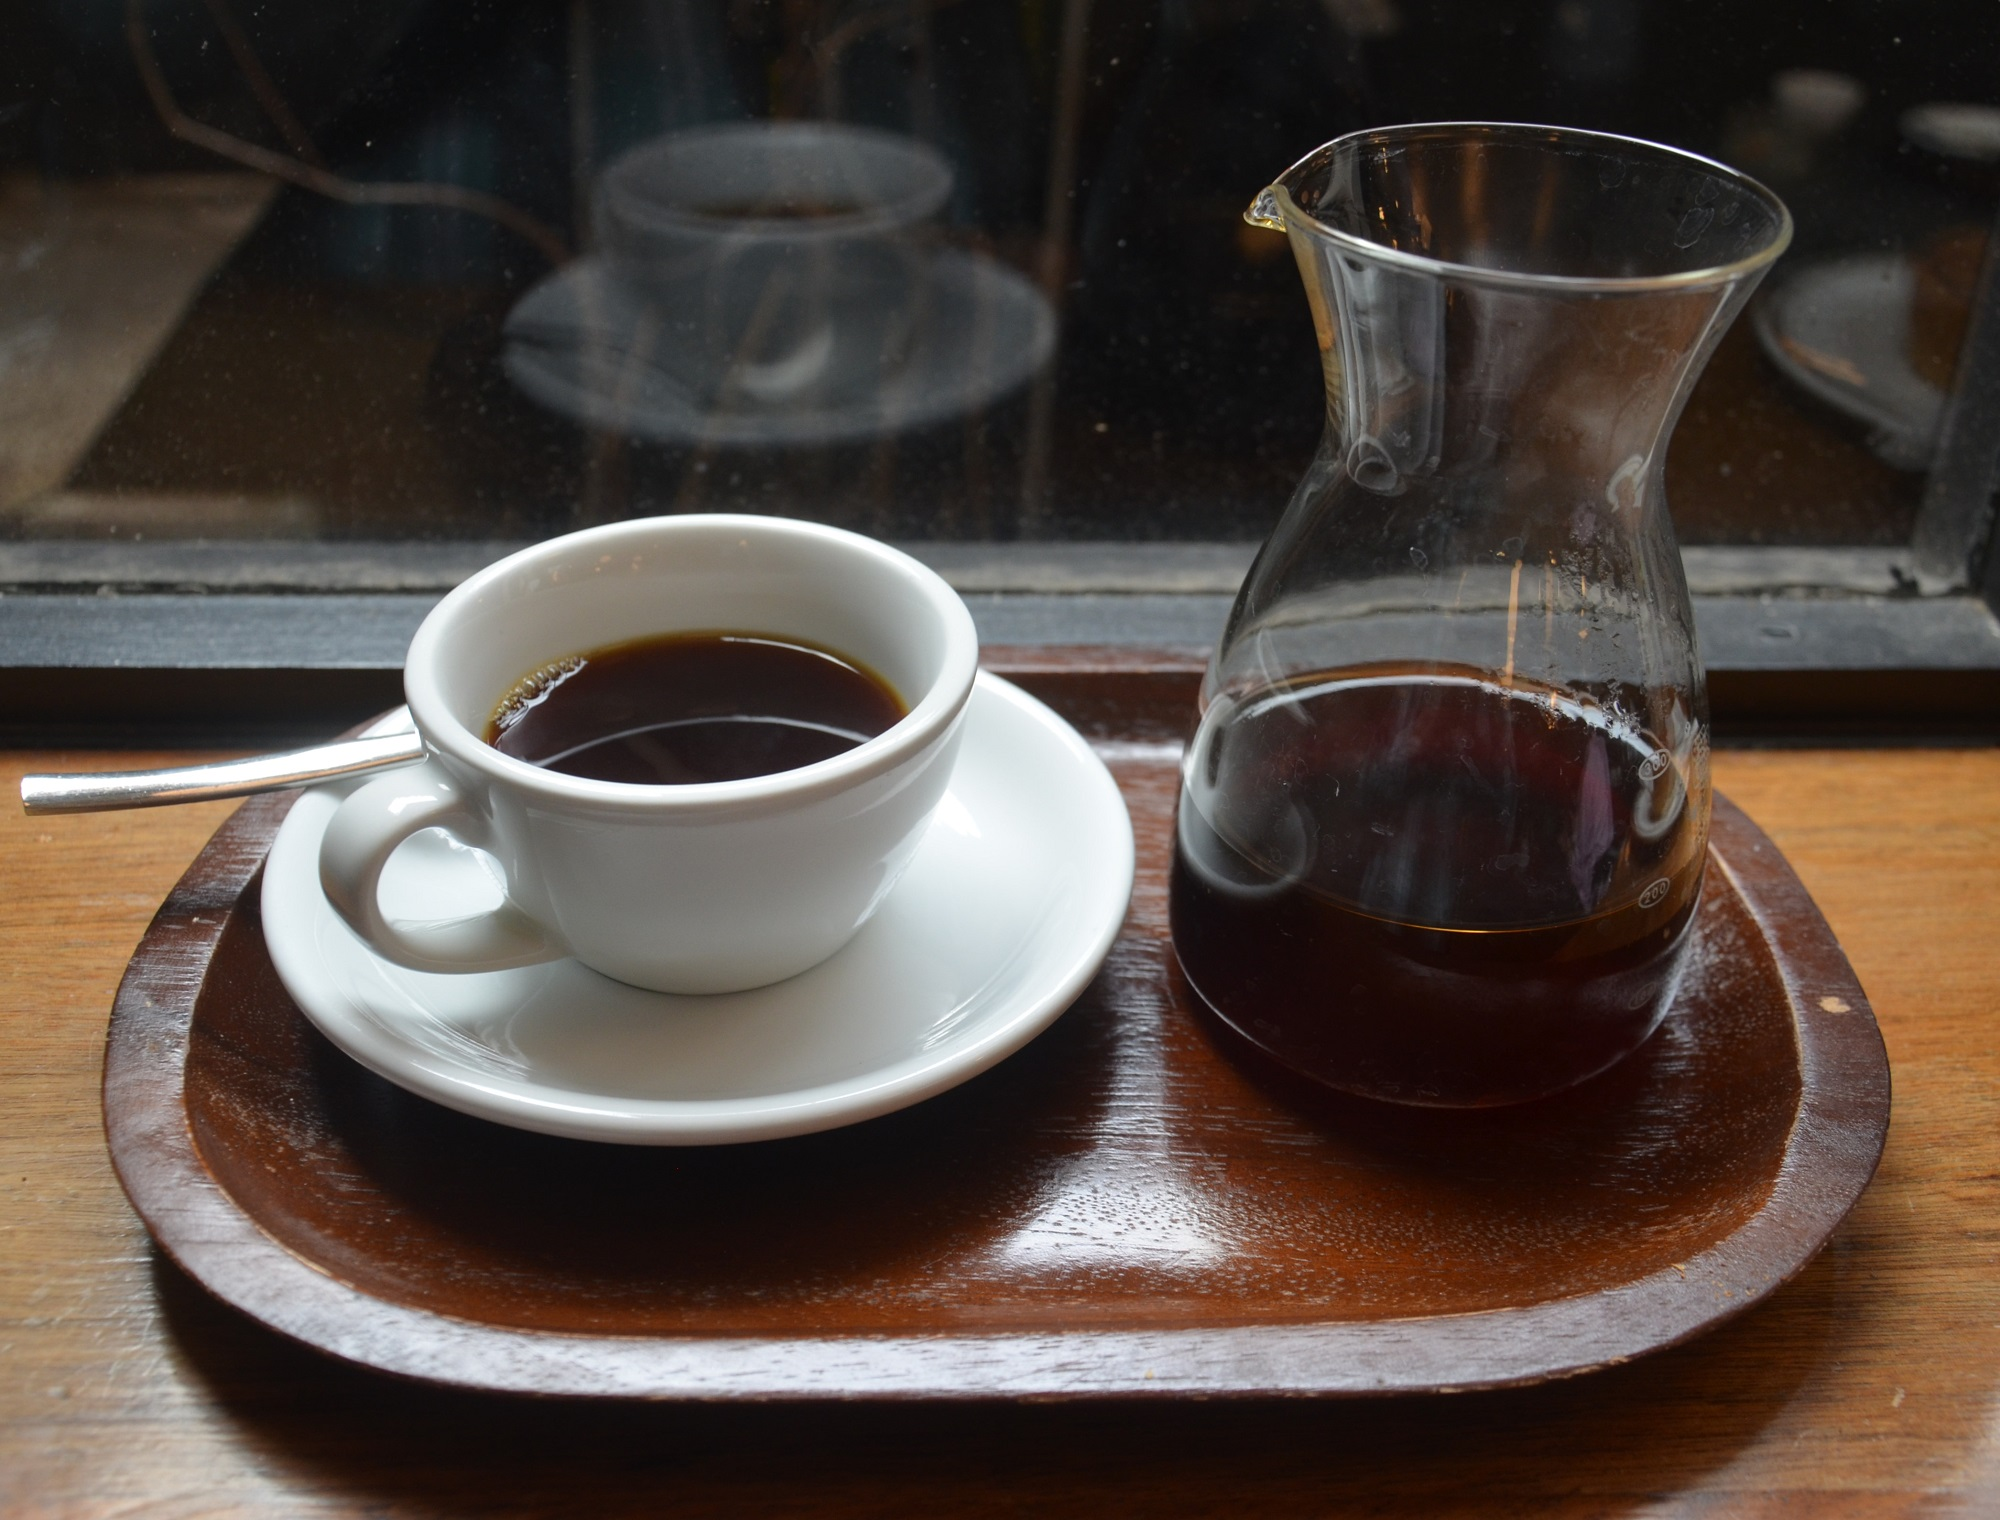 A V60 of the Galapagos San Cristolbol at HR Higgins, beautifully presented in a carafe, cup on one side, resting on the window-bar in the basement coffee room.